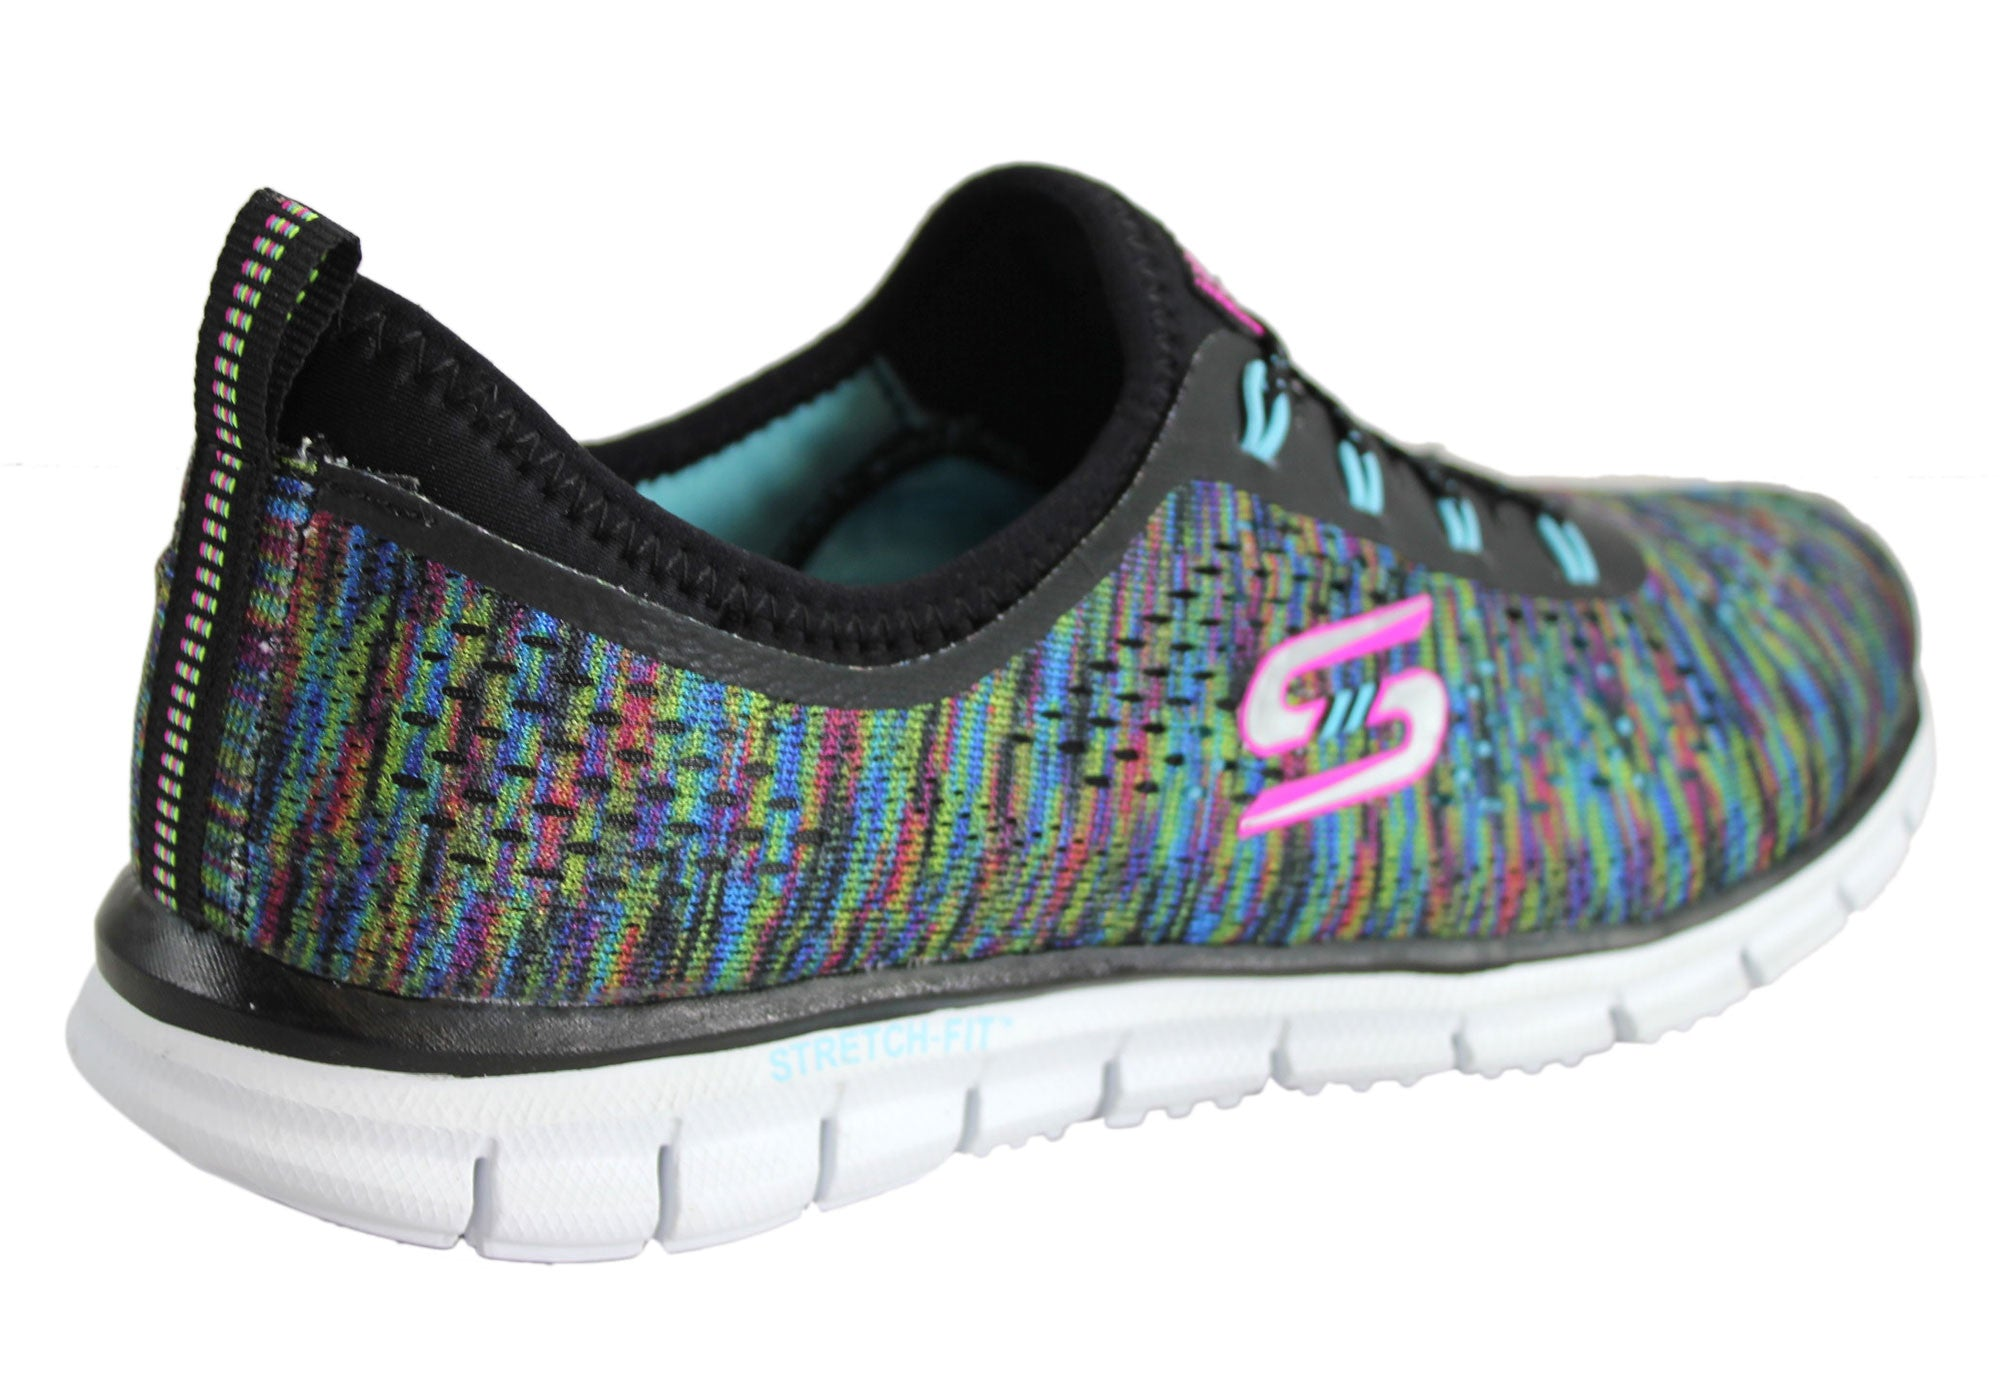 Skechers Glider Deep Space Womens Memory Foam Shoes